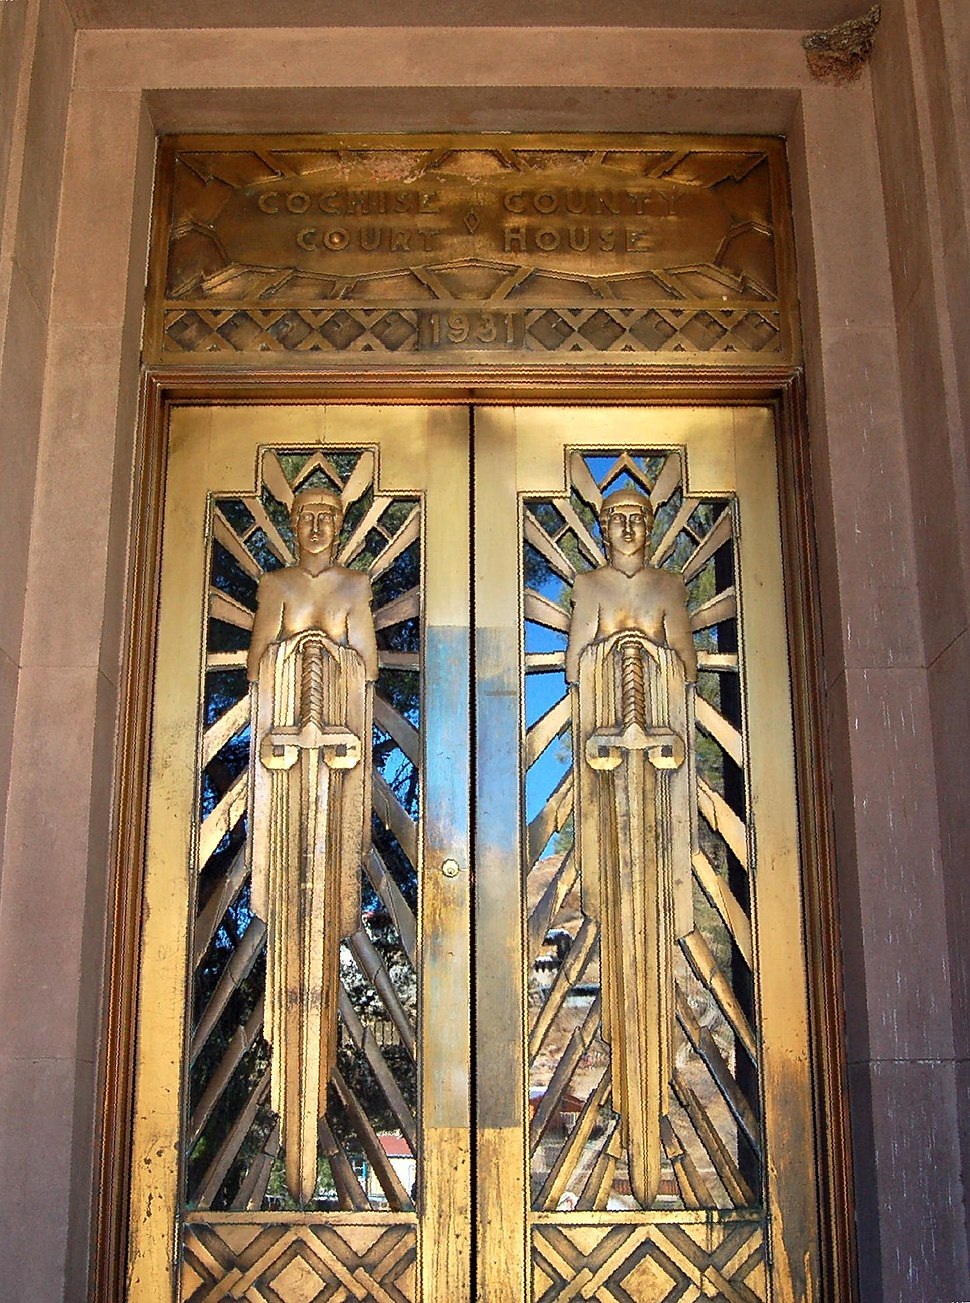 Cochise County Courthouse Bisbee Arizona ArtDecoDoors